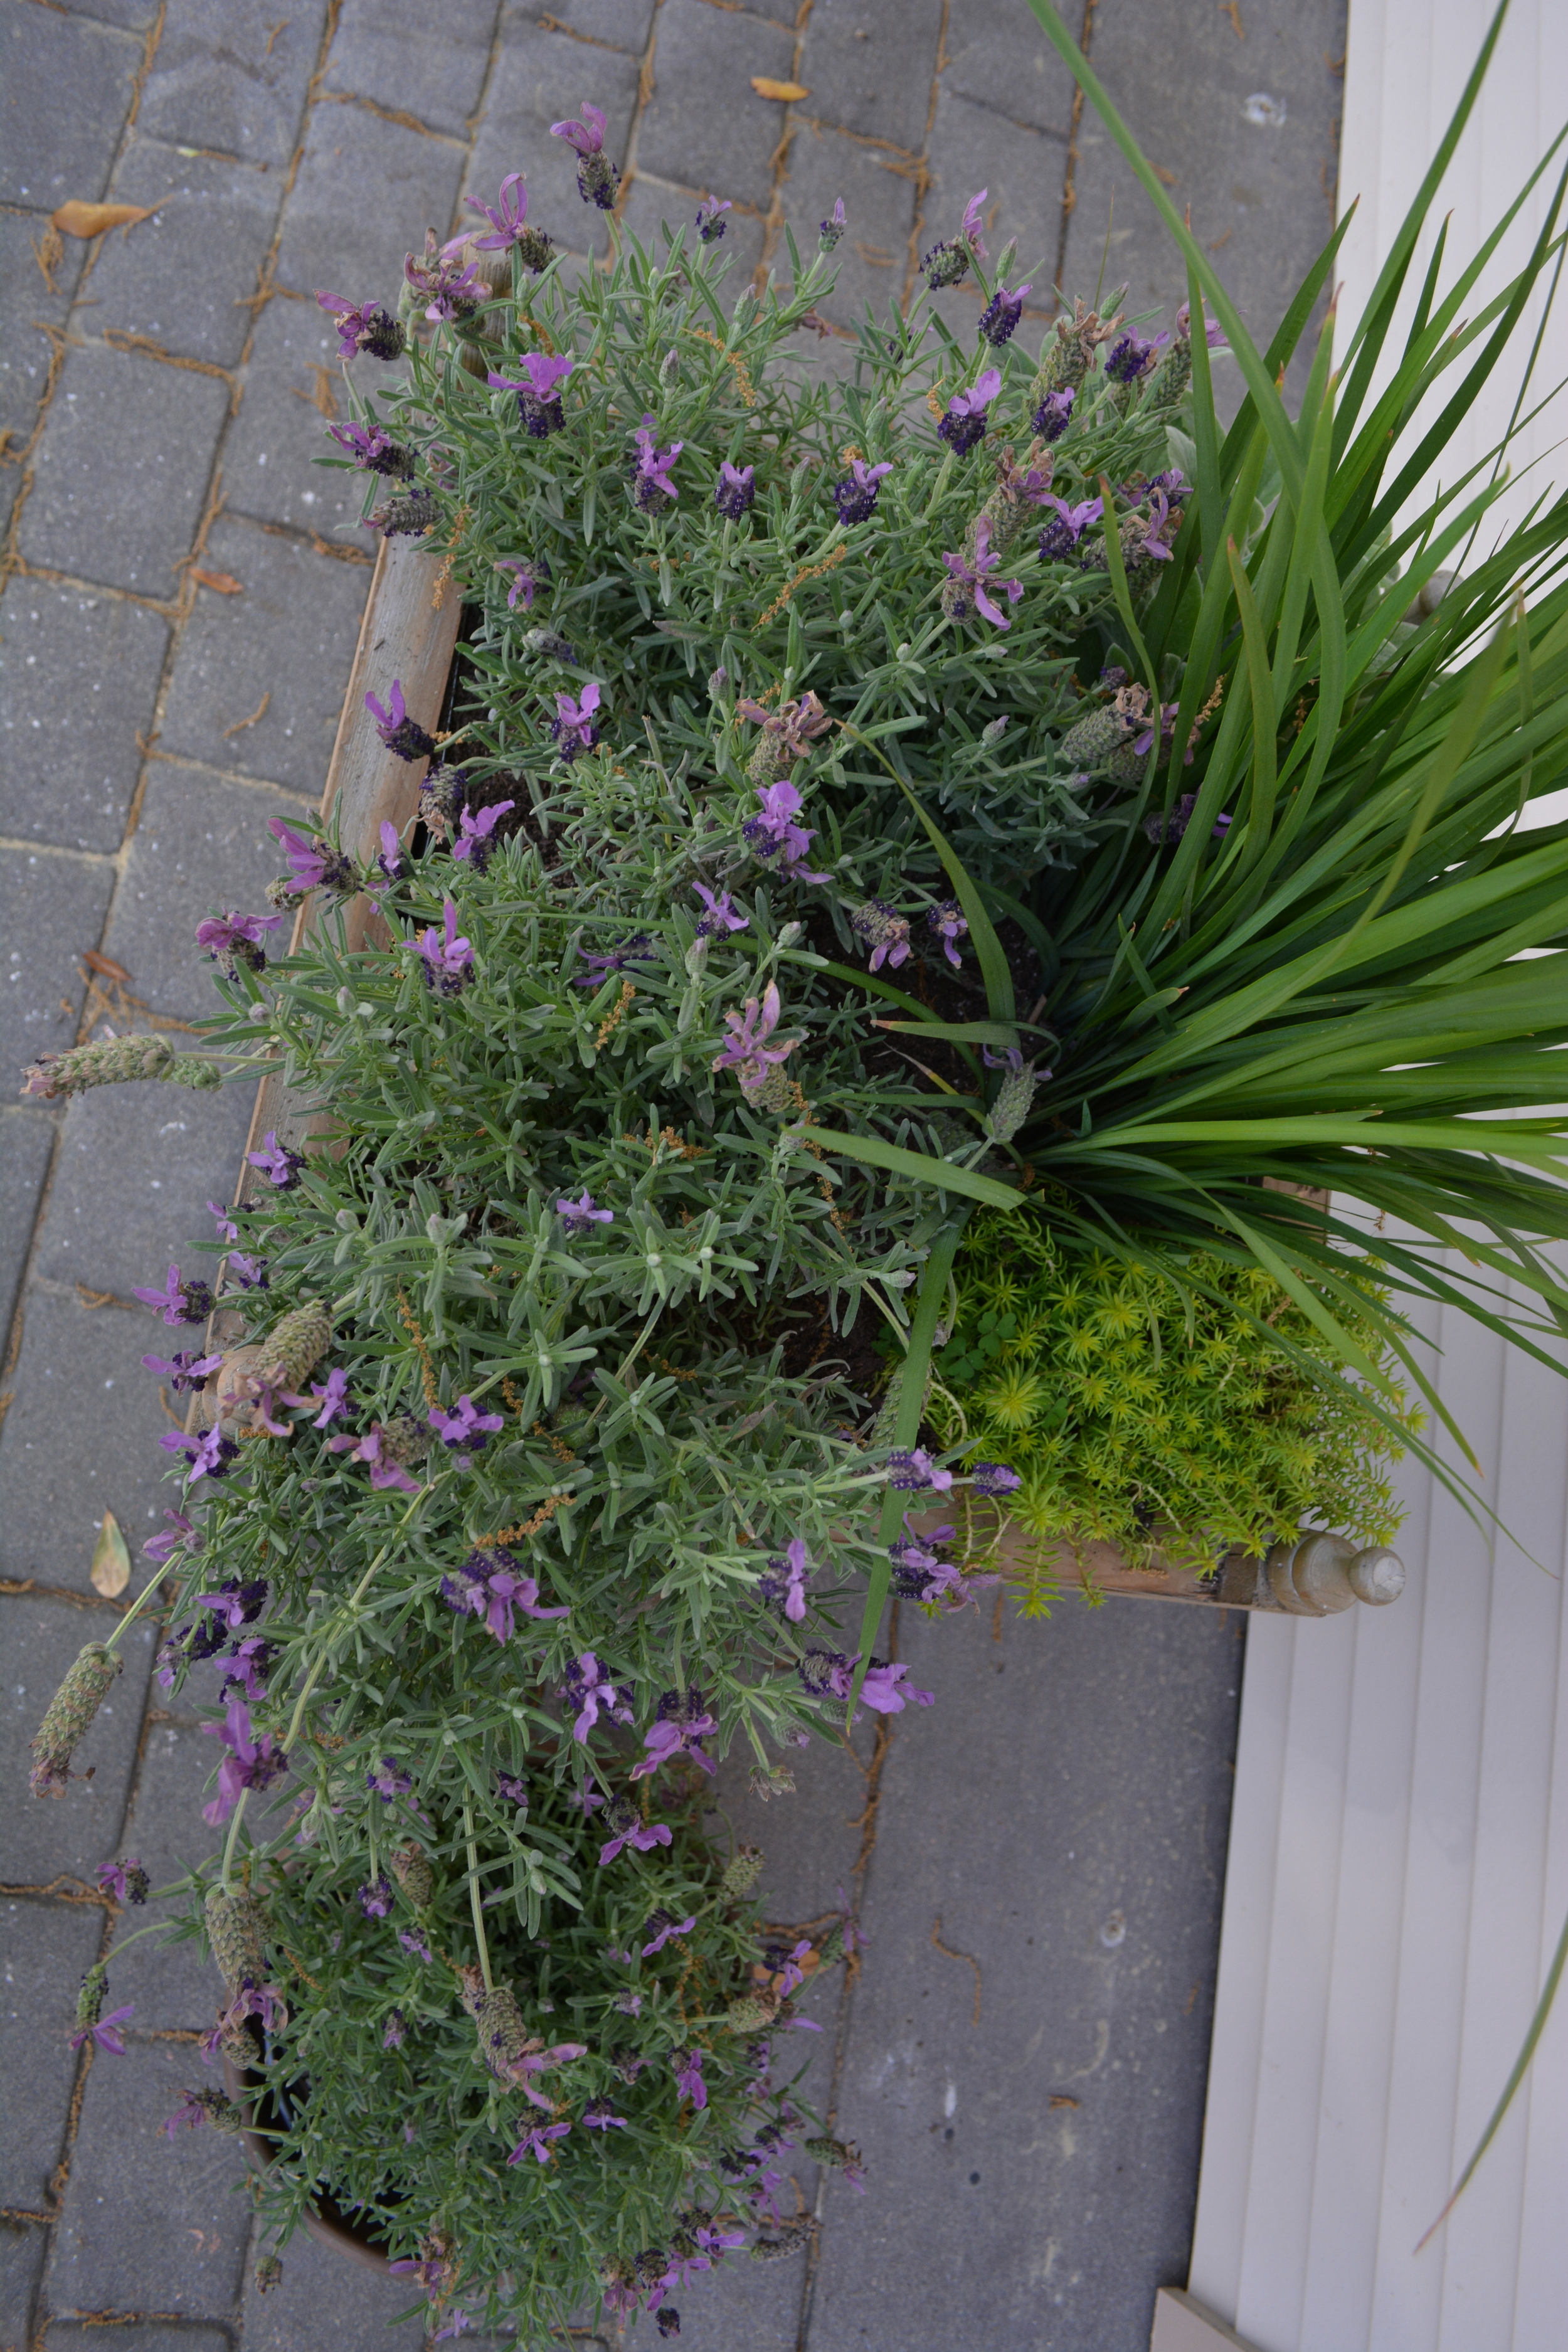 Our large containers filled with several plants, including lavender, irises, and sedum.